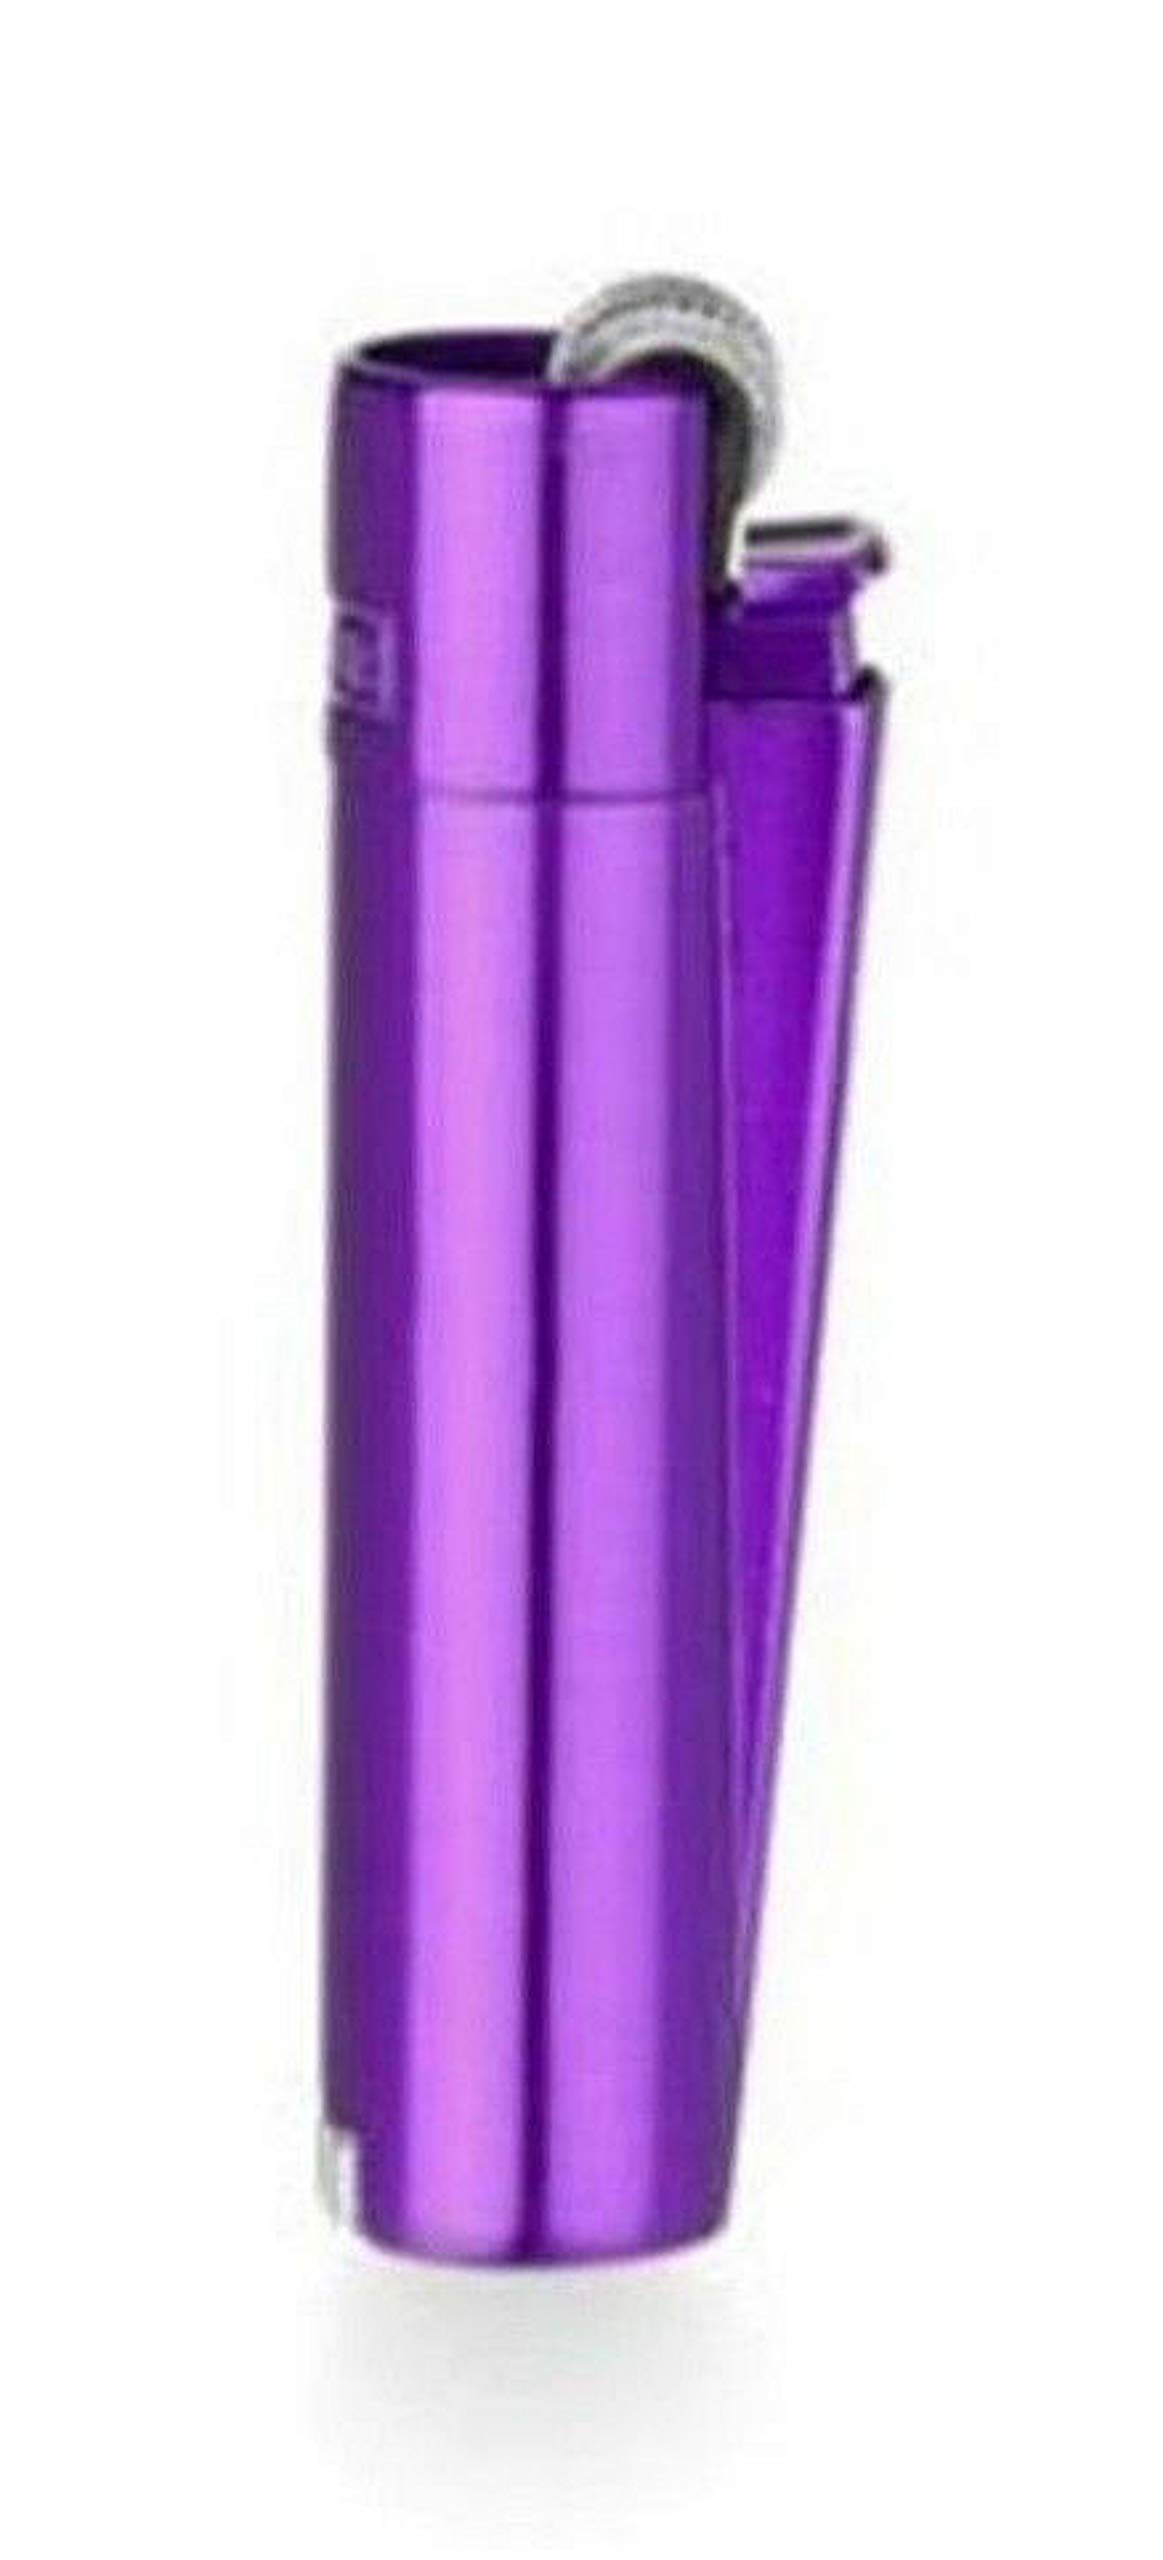 Clipper - Mechero de Metal con Caja de Regalo, Recargable, Color Morado: Amazon.es: Juguetes y juegos